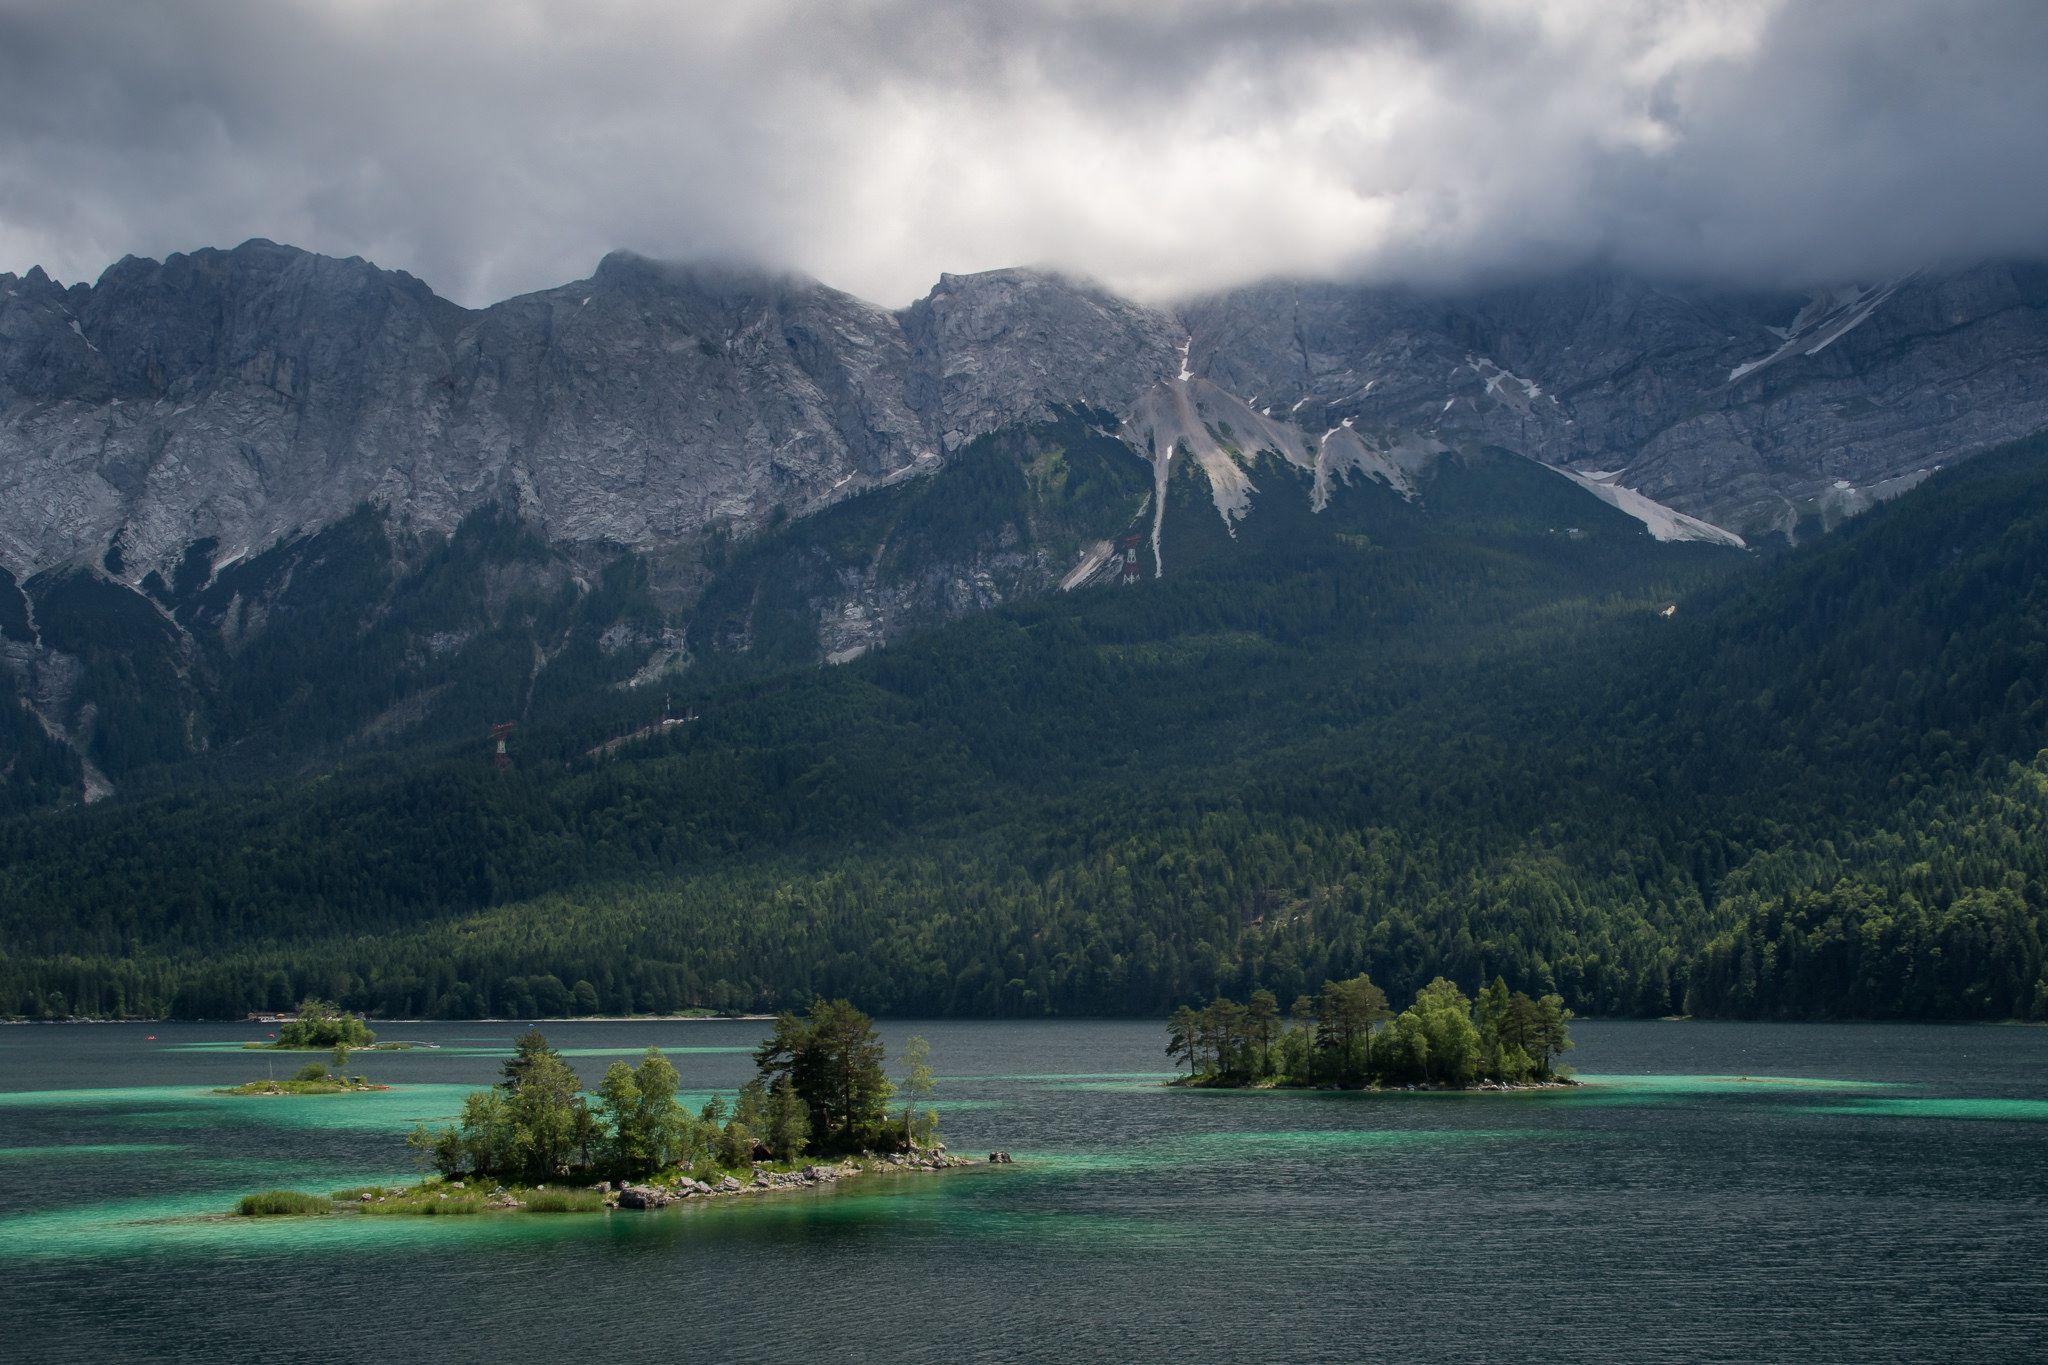 Eibsee with the Zugspitze Germany's highest mountain covered in clouds [OC][2048x1365] http://ift.tt/28VfsZe